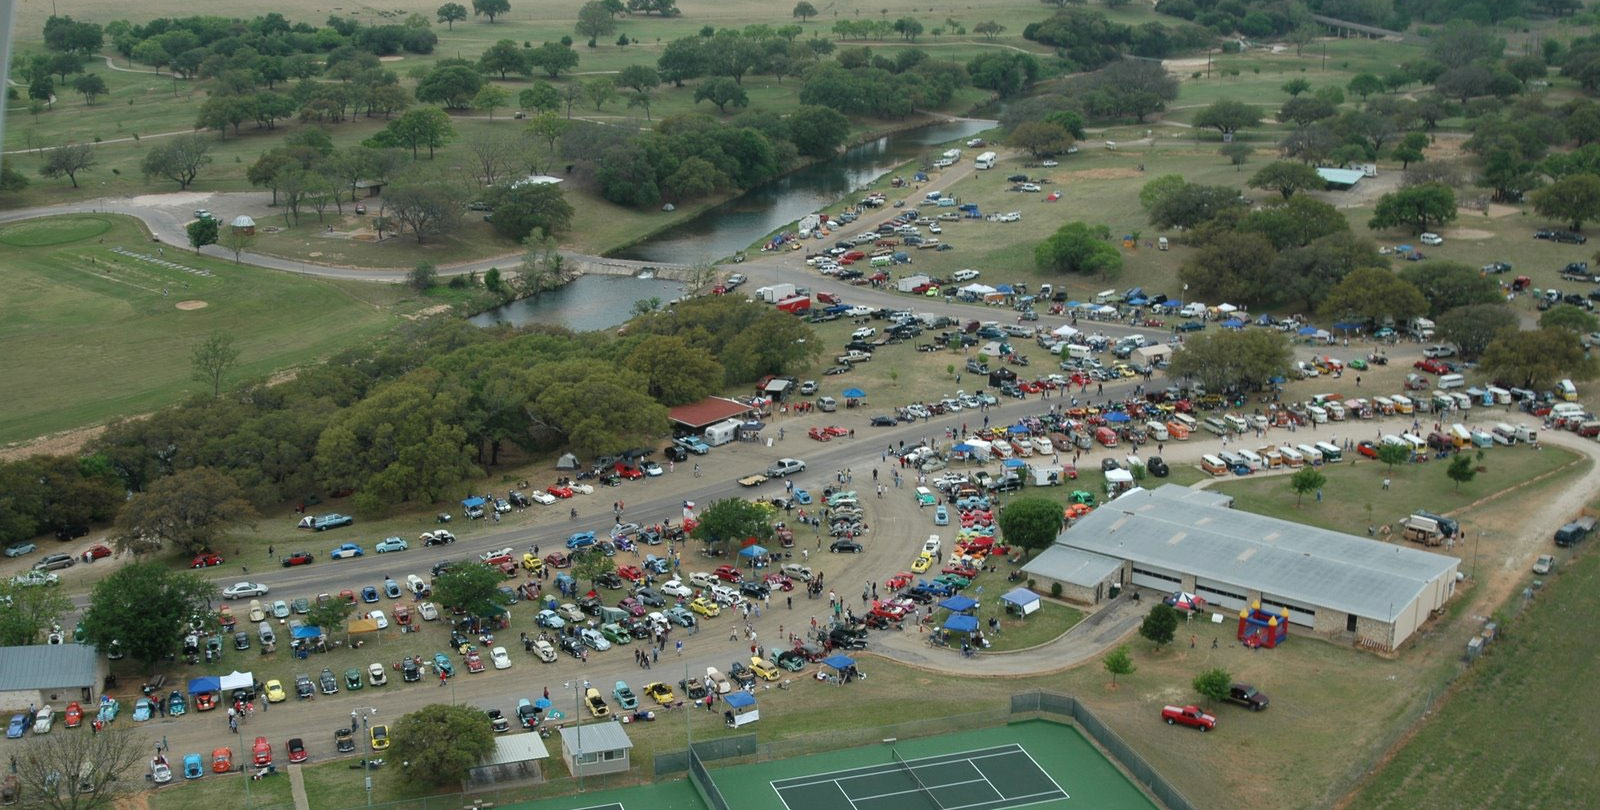 The Biggest Classic Volkswagen Show In Texas Texas Vw